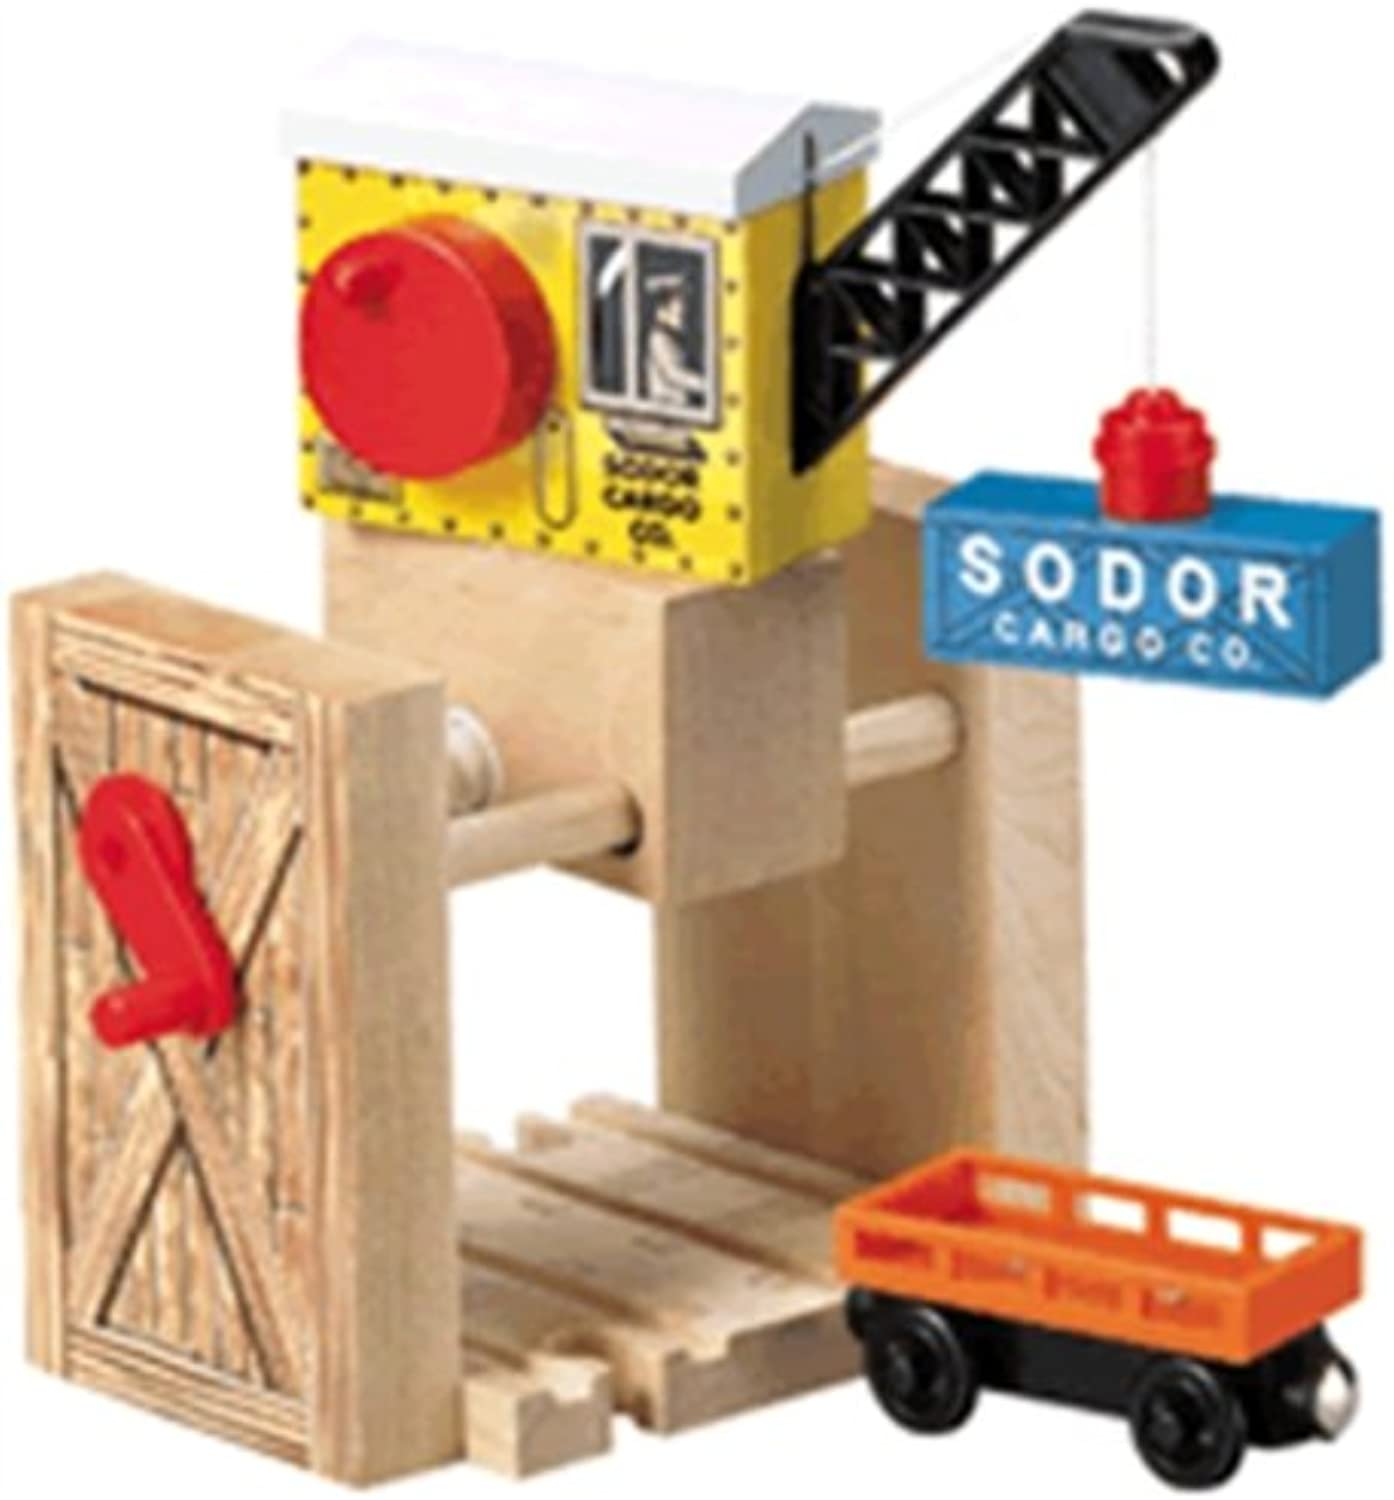 Thomas the Tank Engine & Friends Wooden Railway  Sodor Cargo Crane  LC99321